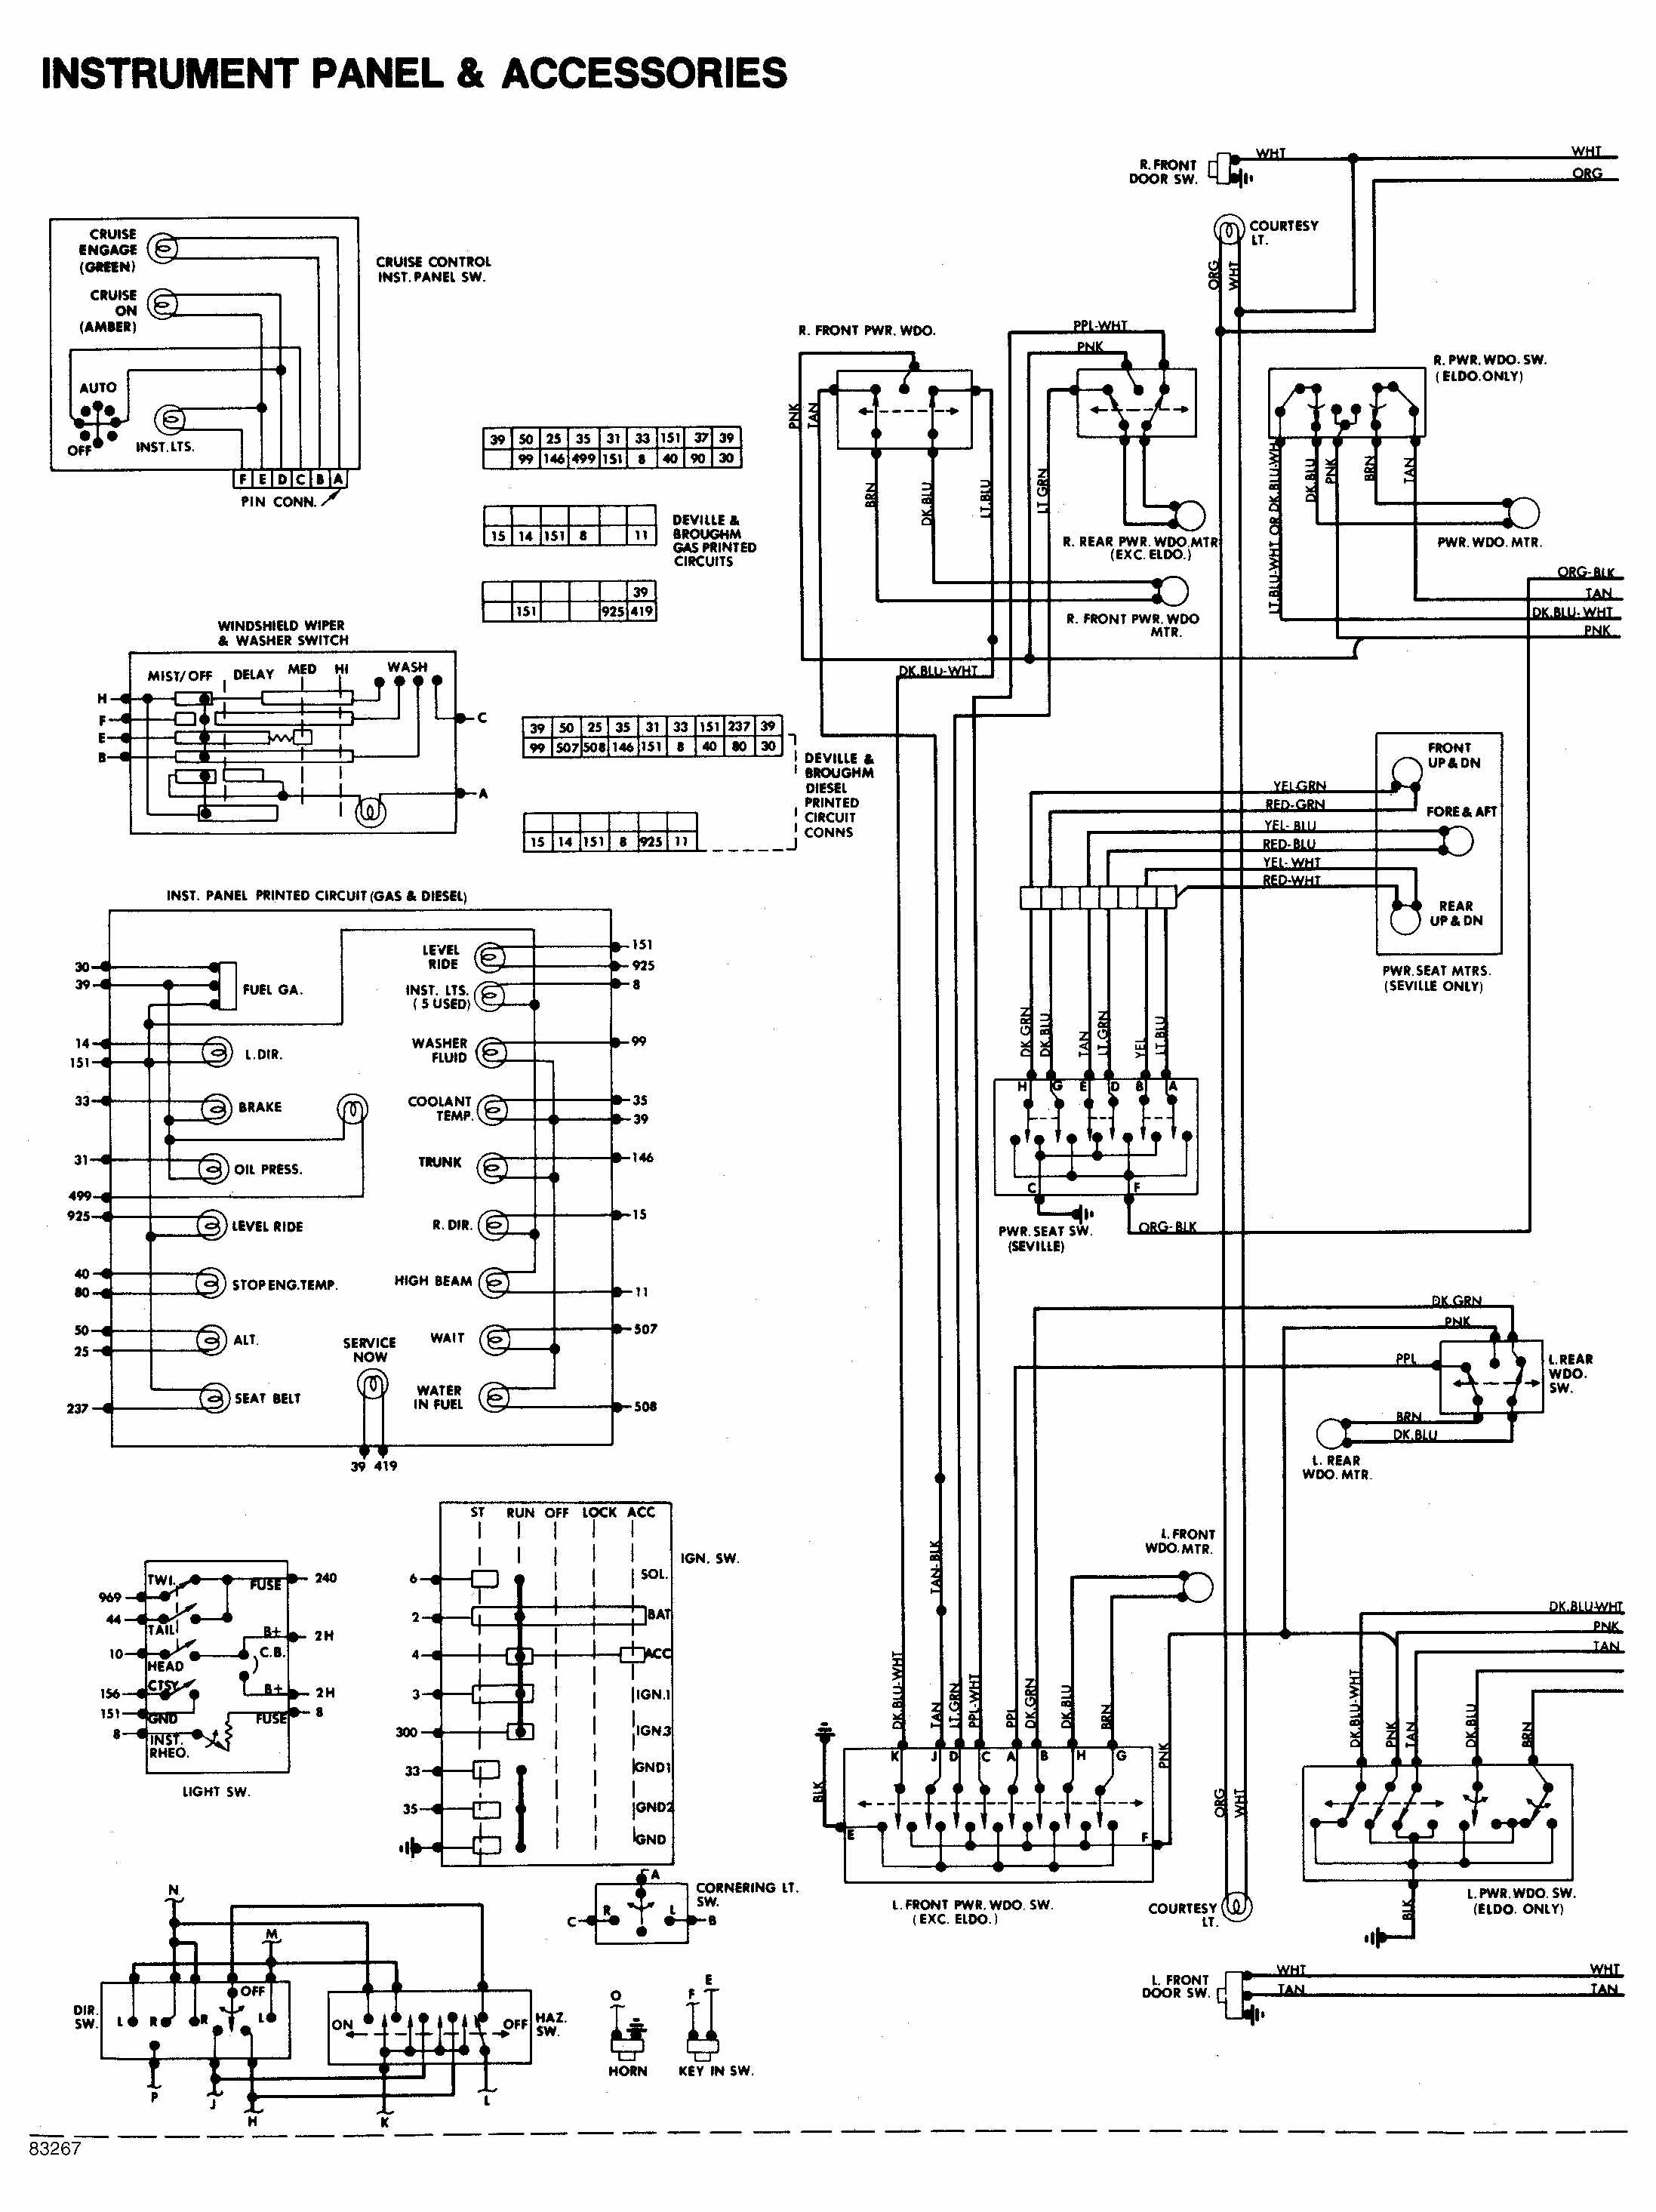 instrument panel and accessories wiring diagram of 1984 cadillac deville gm wiring diagrams gm wiring diagrams online \u2022 wiring diagrams j wiring diagram for 97 cadillac deville at n-0.co